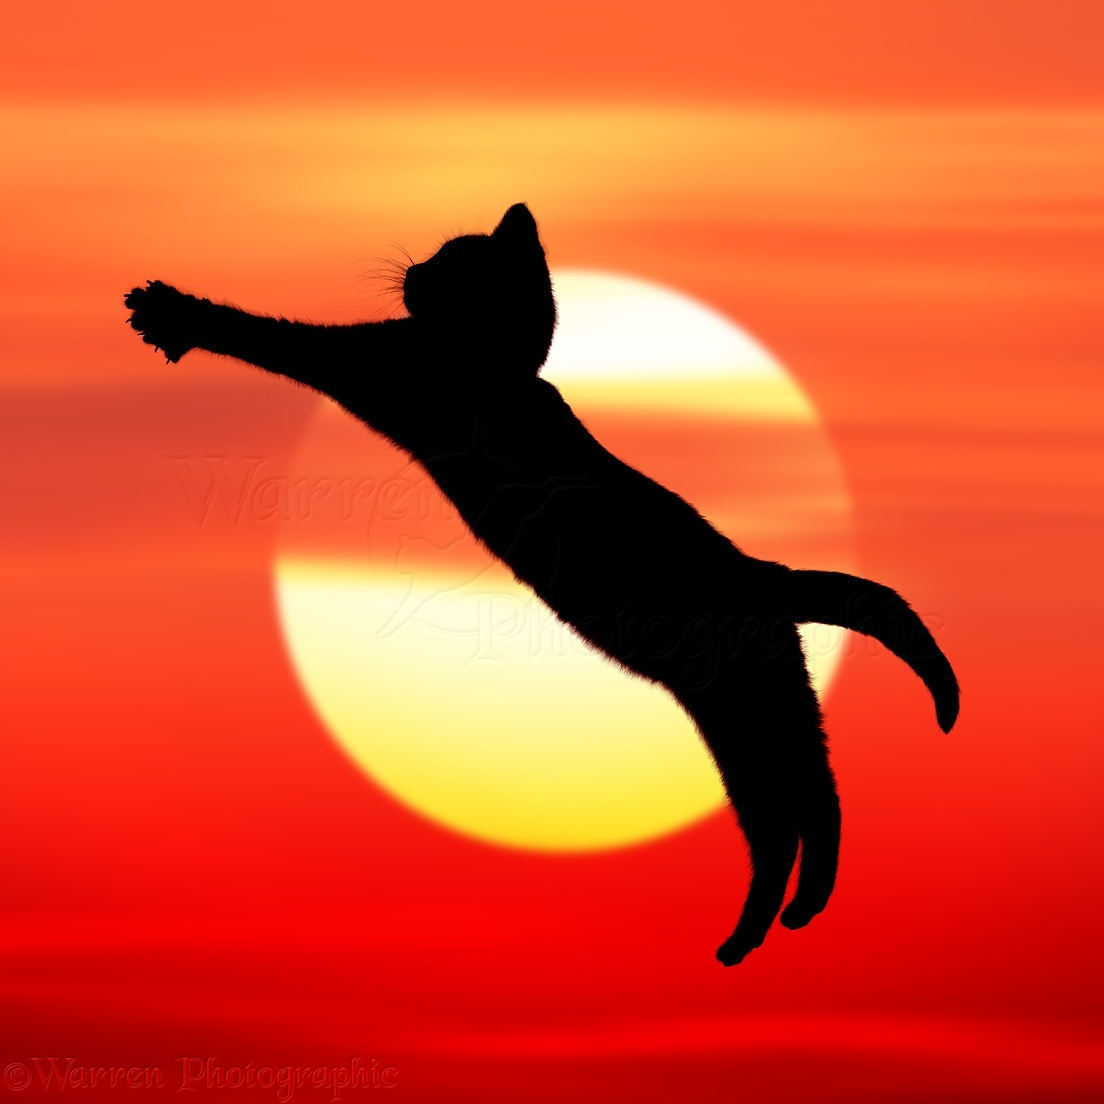 Silhouette Of Cat With Kittens